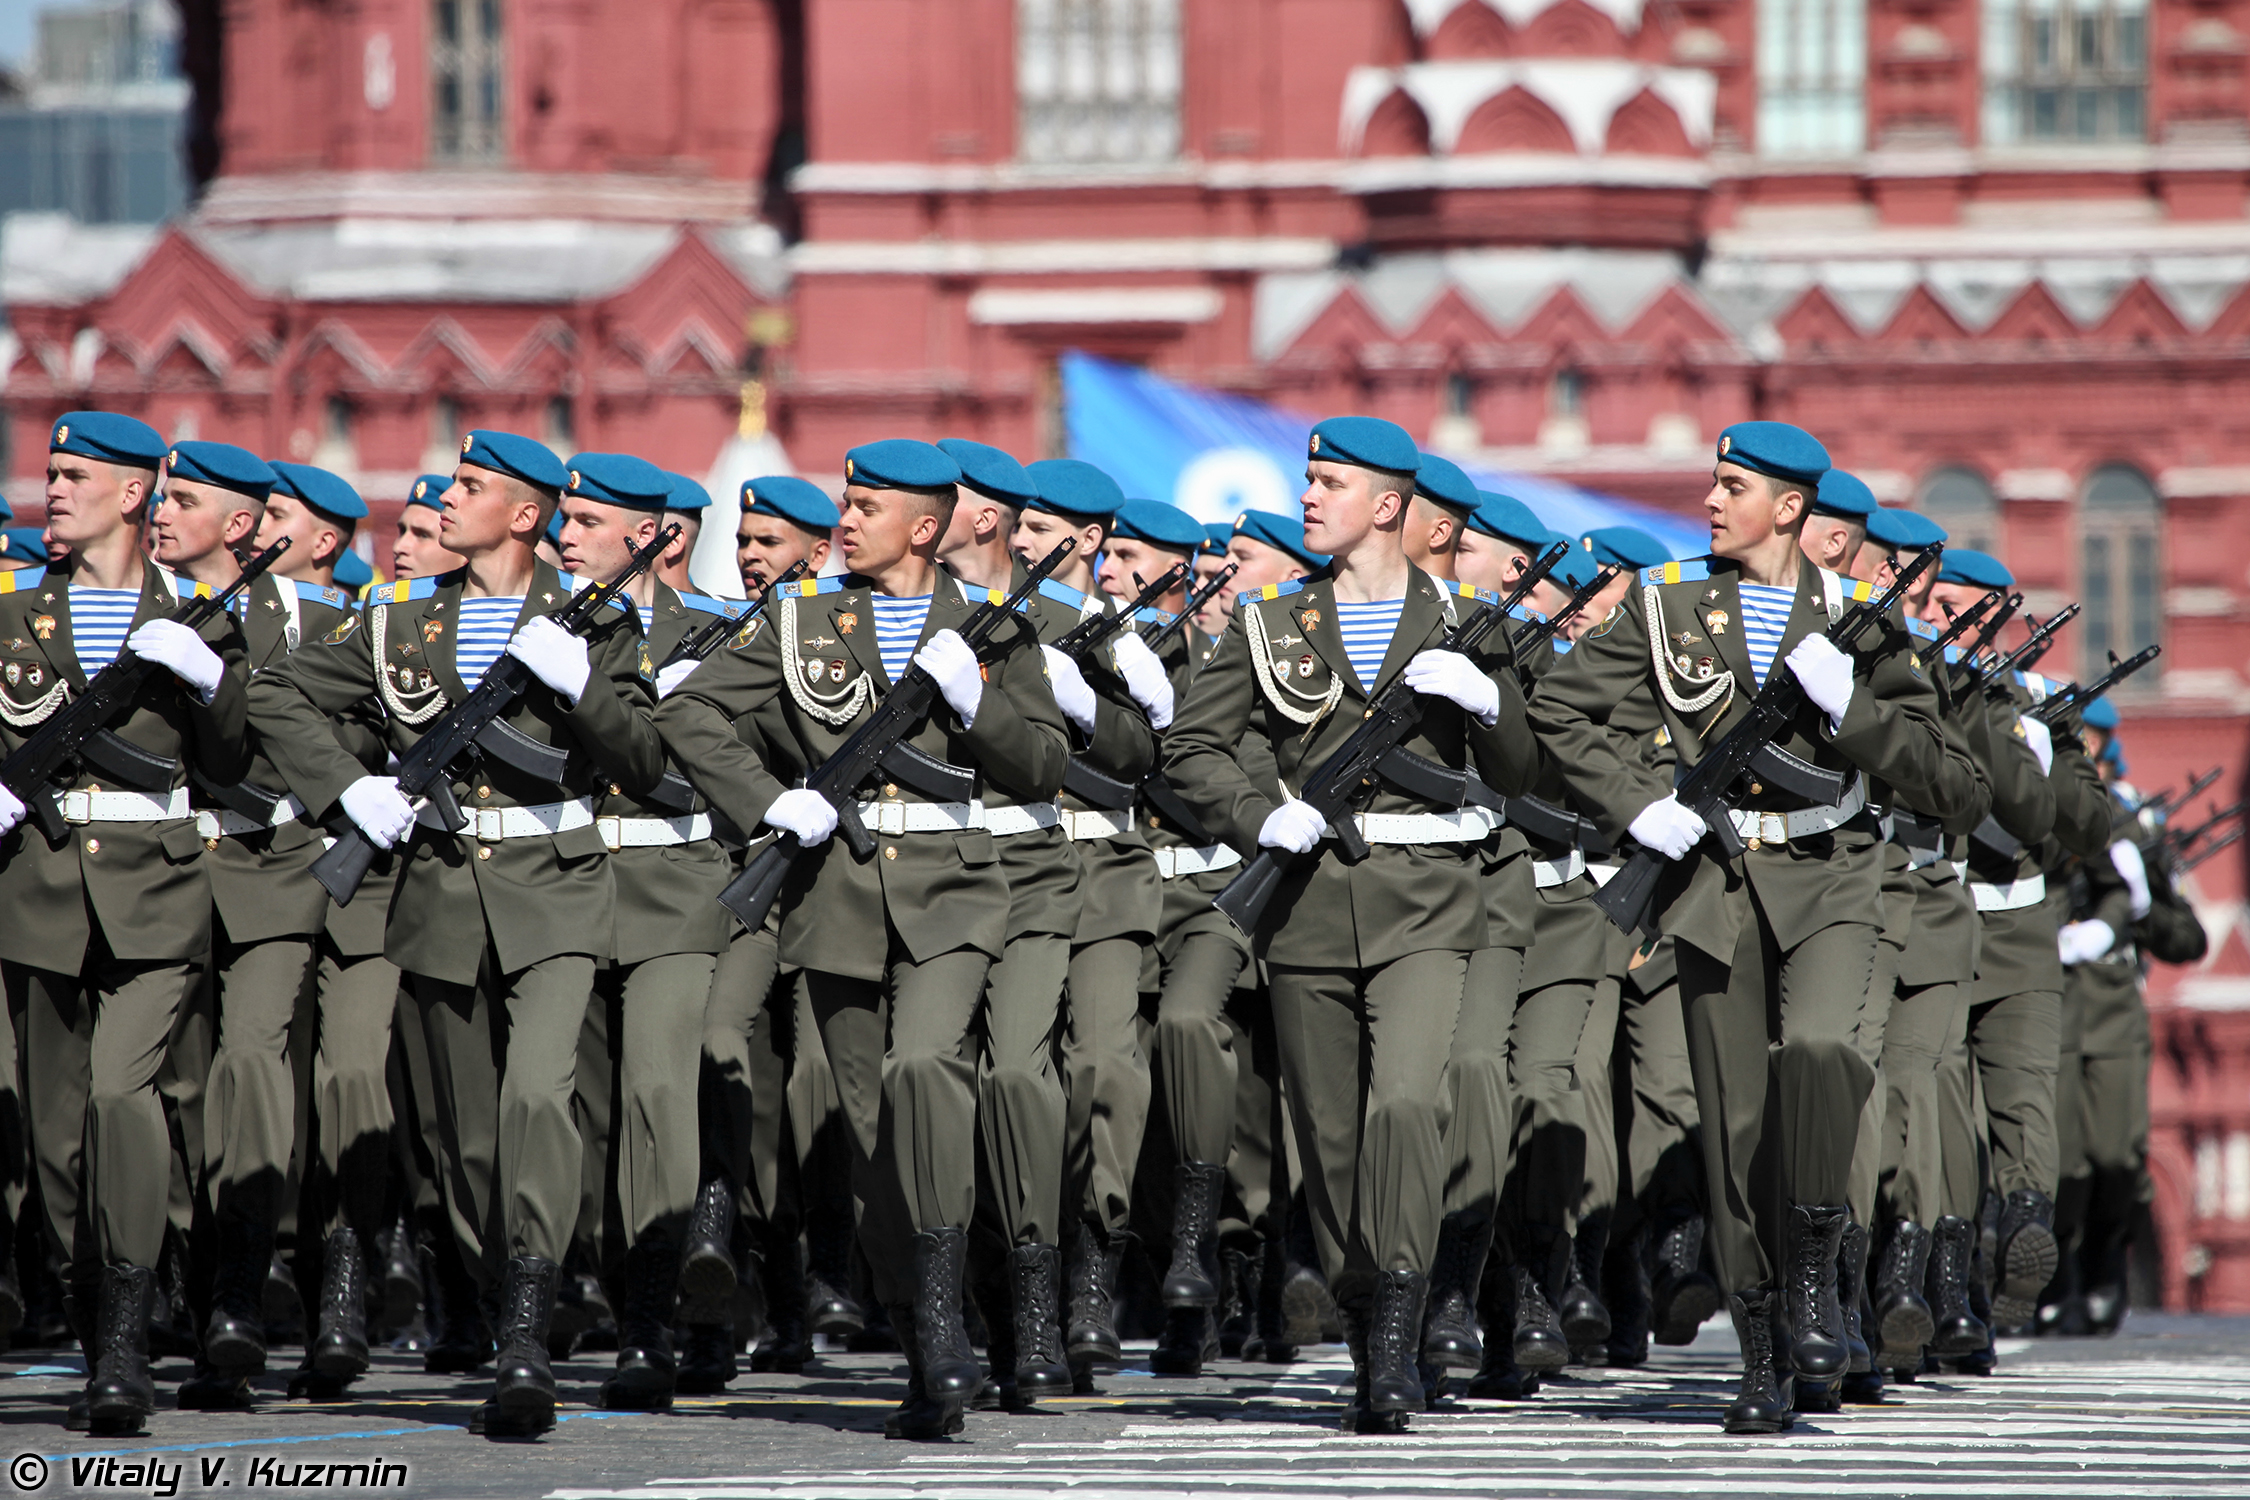 217th Guards Airborne Regiment of 98th Guards Airborne Division of the Russian Army